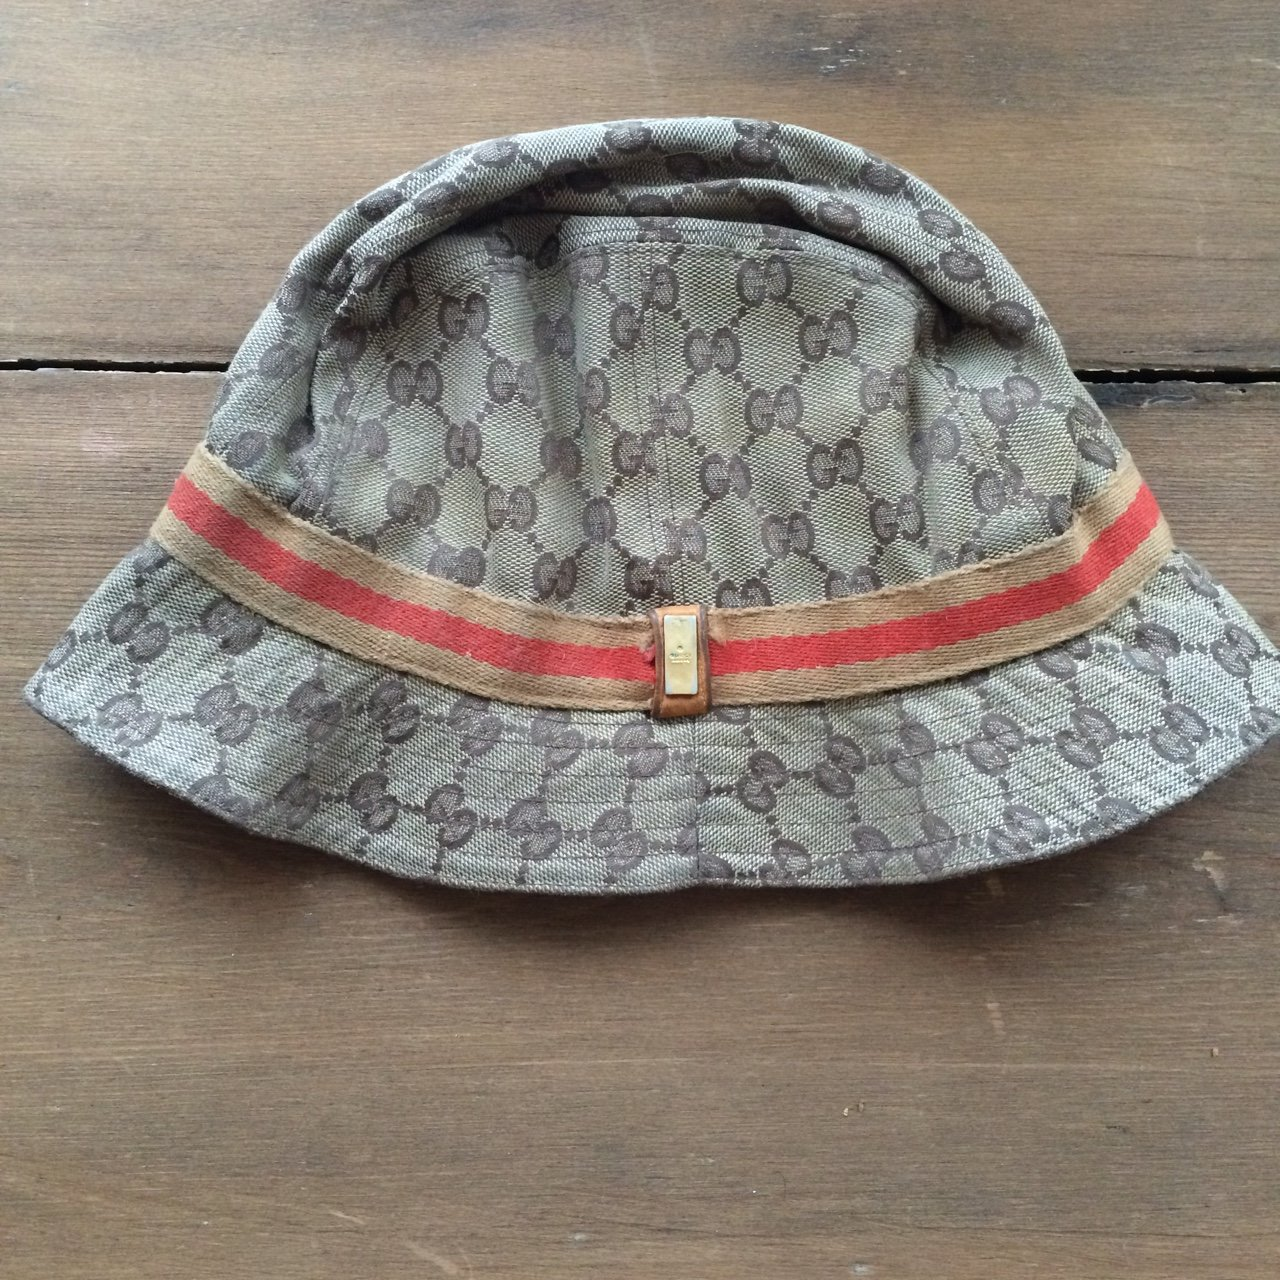 ba8b9503763ae Gucci bucket  floppy hat. Size Small. 100% real. Authentic - Depop